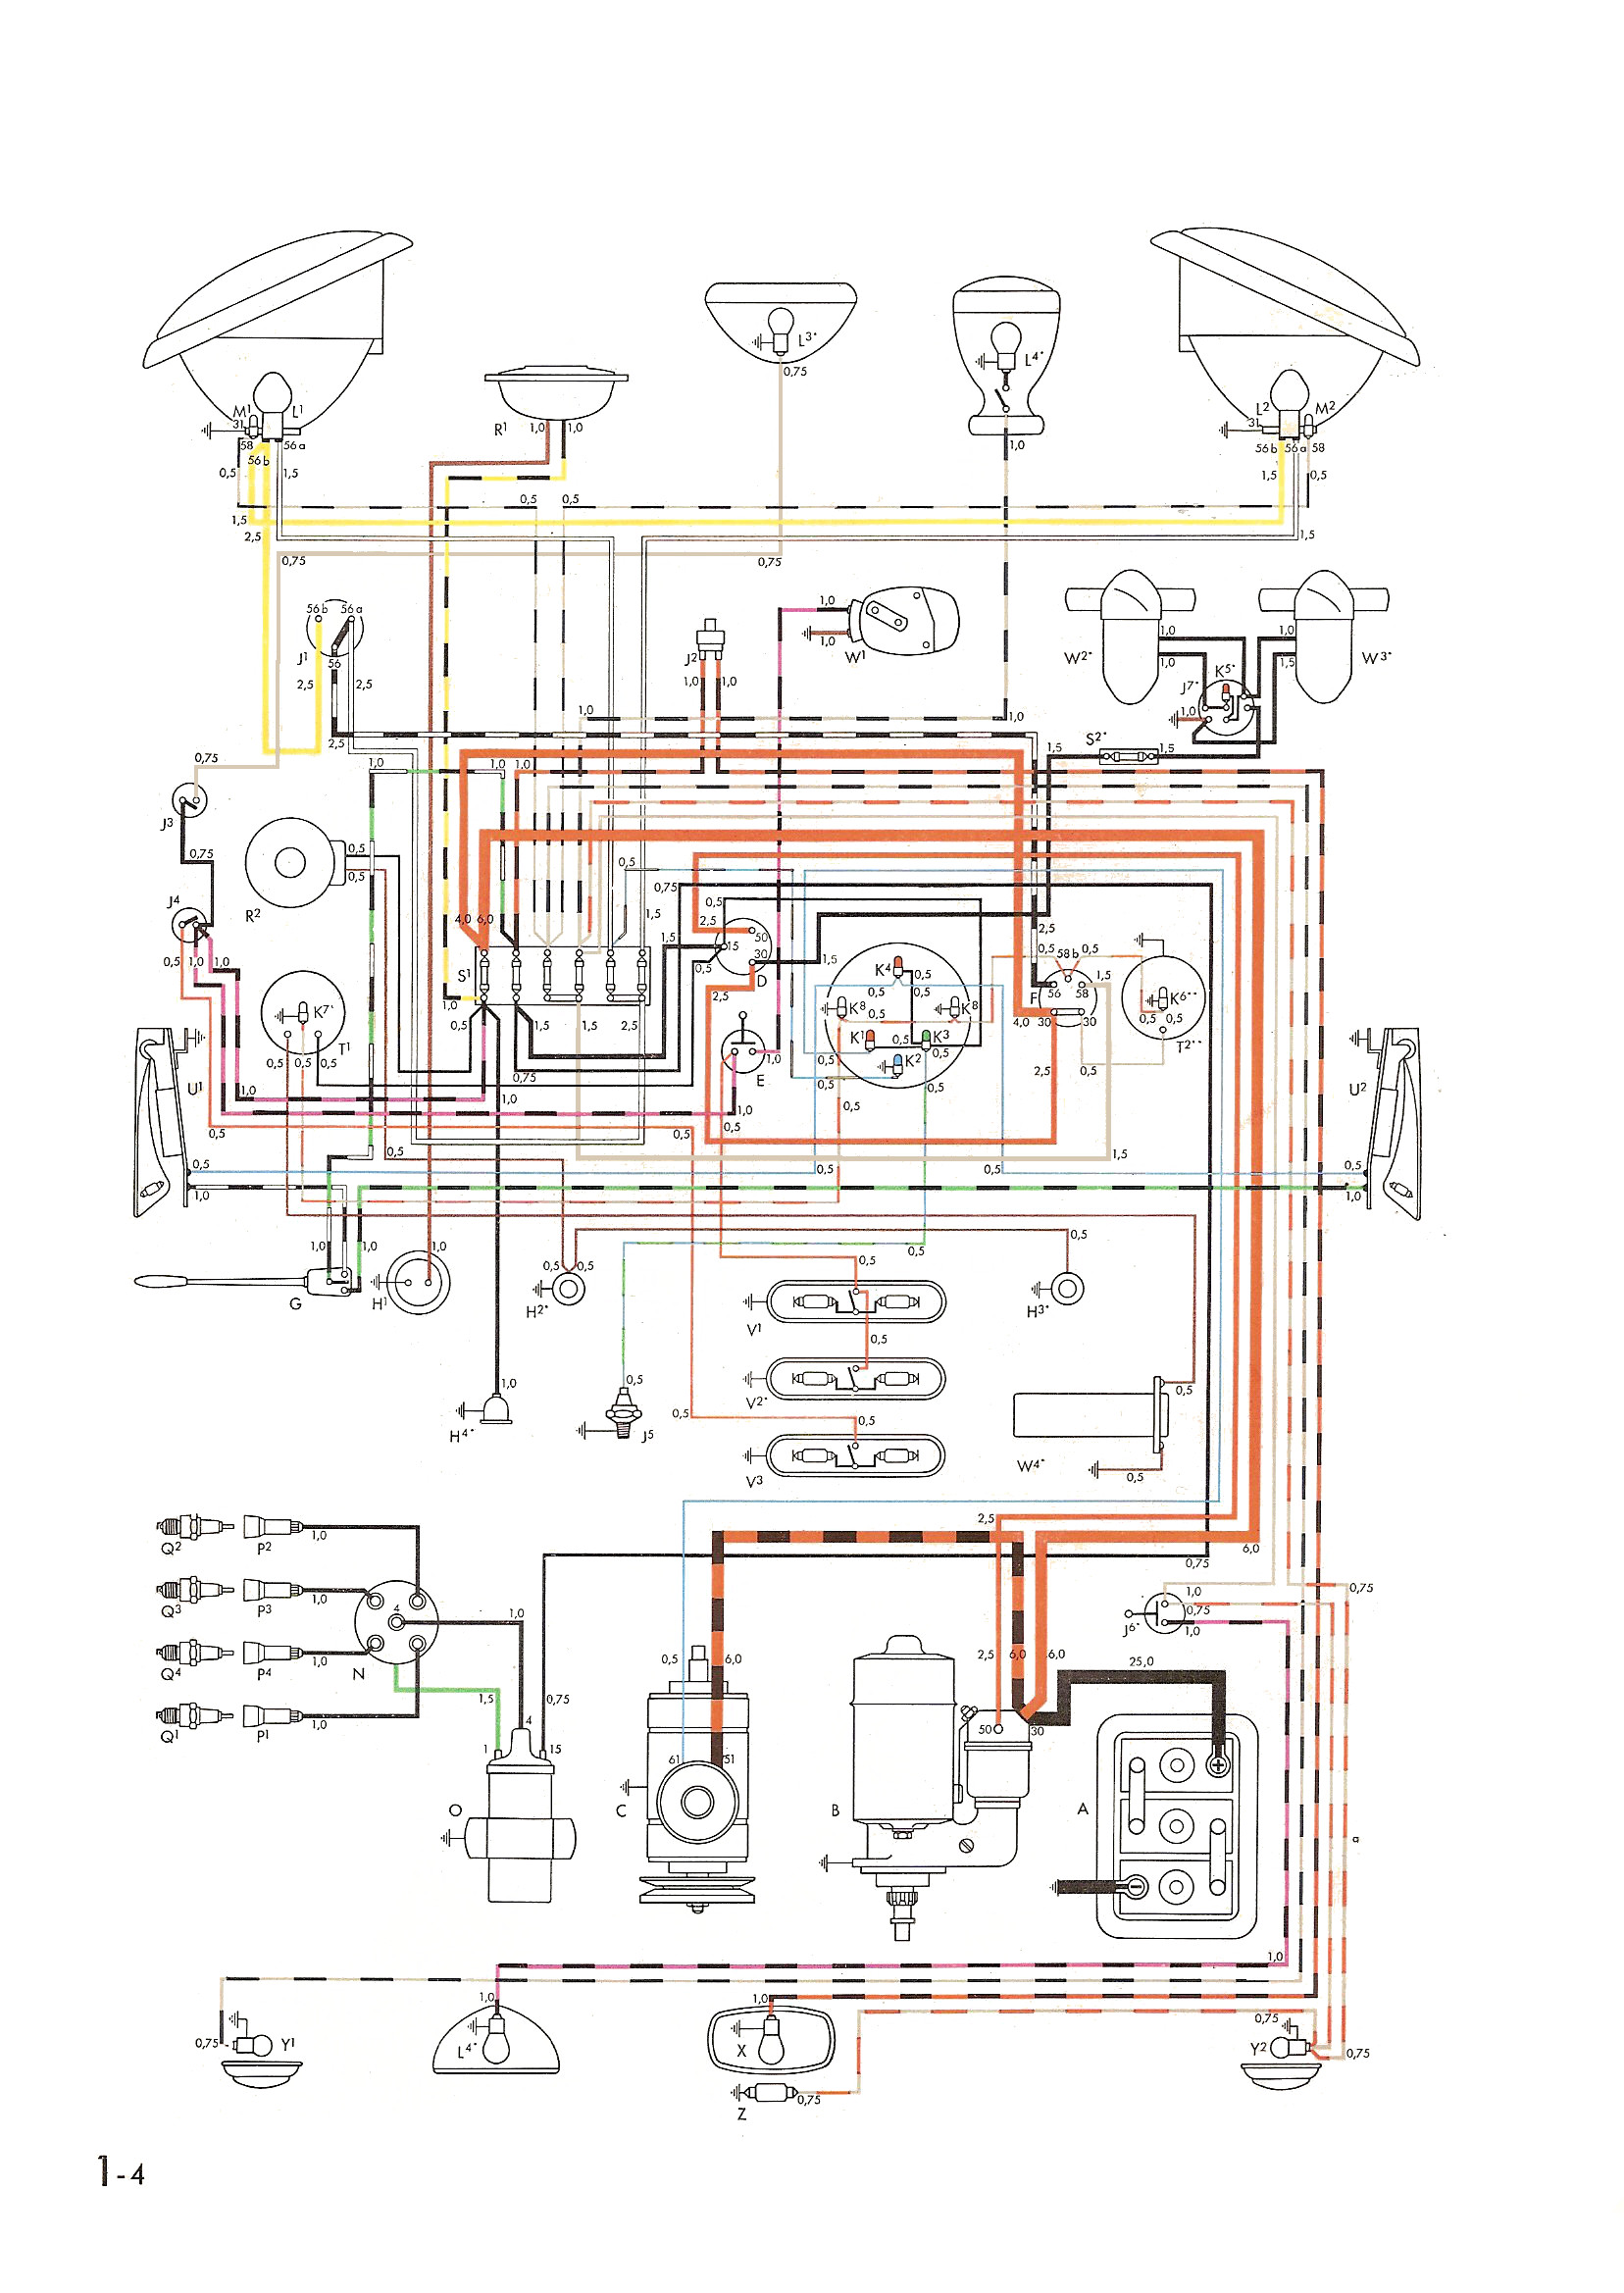 Wiring Diagram For 1960 Vw Beetle : Chevelle heating diagram free engine image for